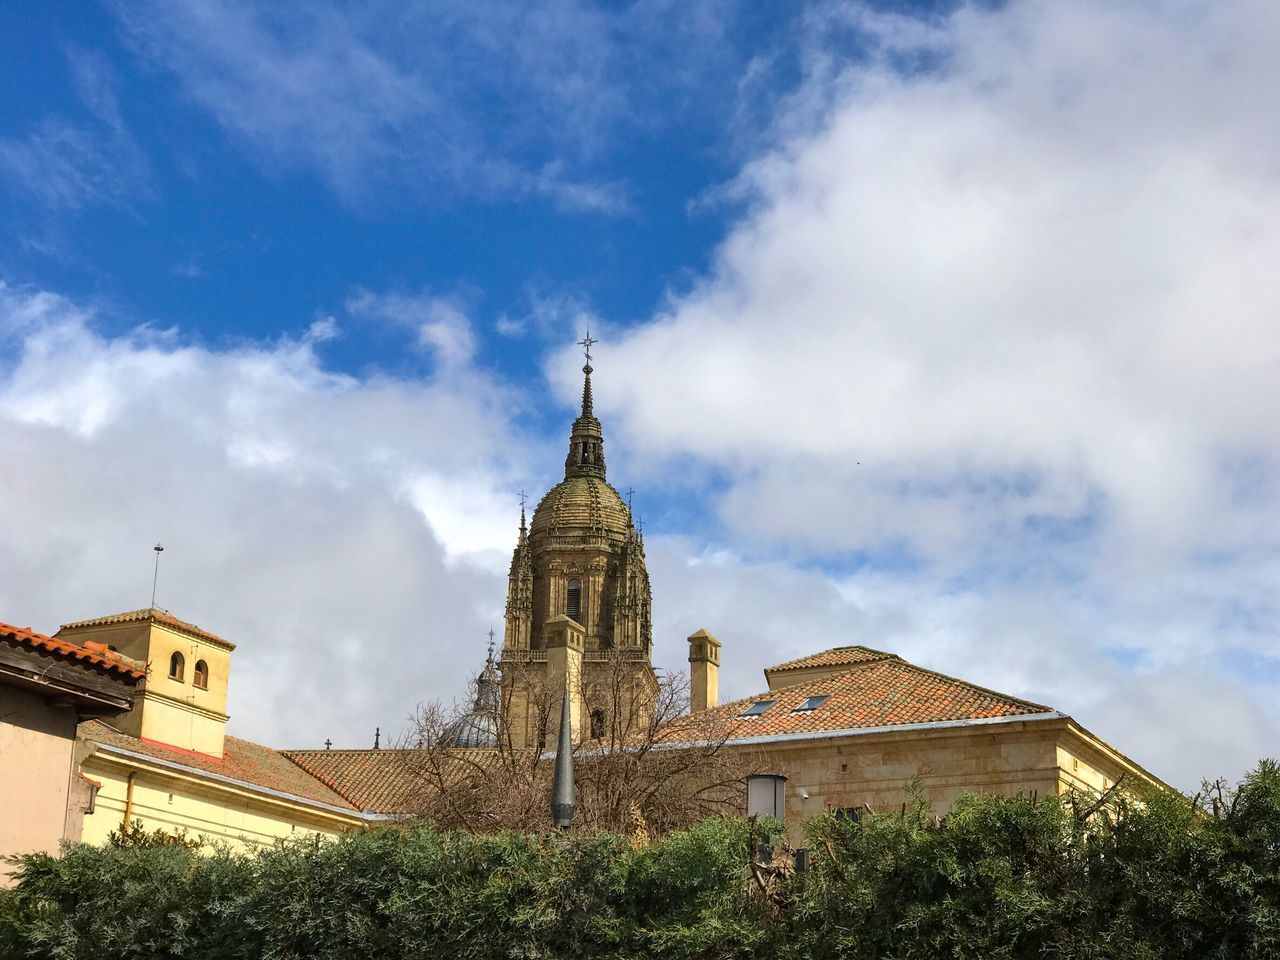 Travel Destination Travel Building Exterior Architecture Built Structure Religion Sky Place Of Worship Spirituality Outdoors No People Cloud - Sky Abbey Day City Urban Lifestyle Catedral De Salamanca Urban Landscape Cathedral Urban World Heritage Travel Destinations Salamanca Architecture Traveling